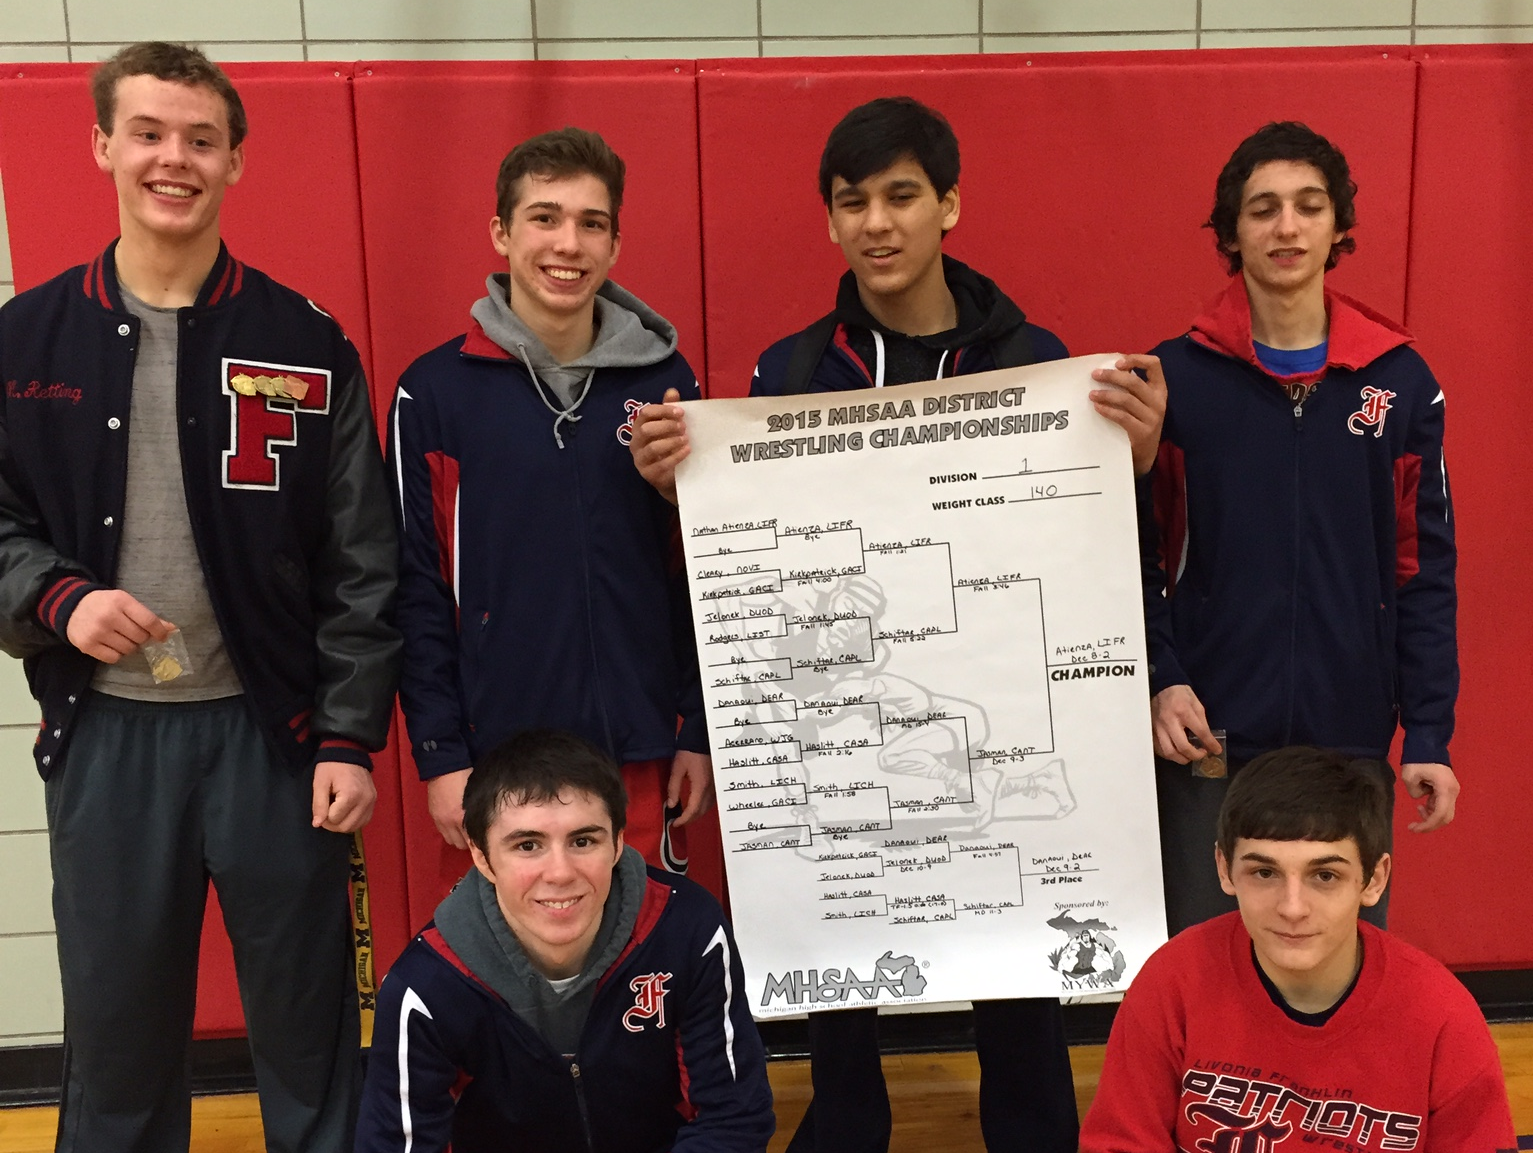 Pictured are Livonia Franklin's six regional qualifiers.